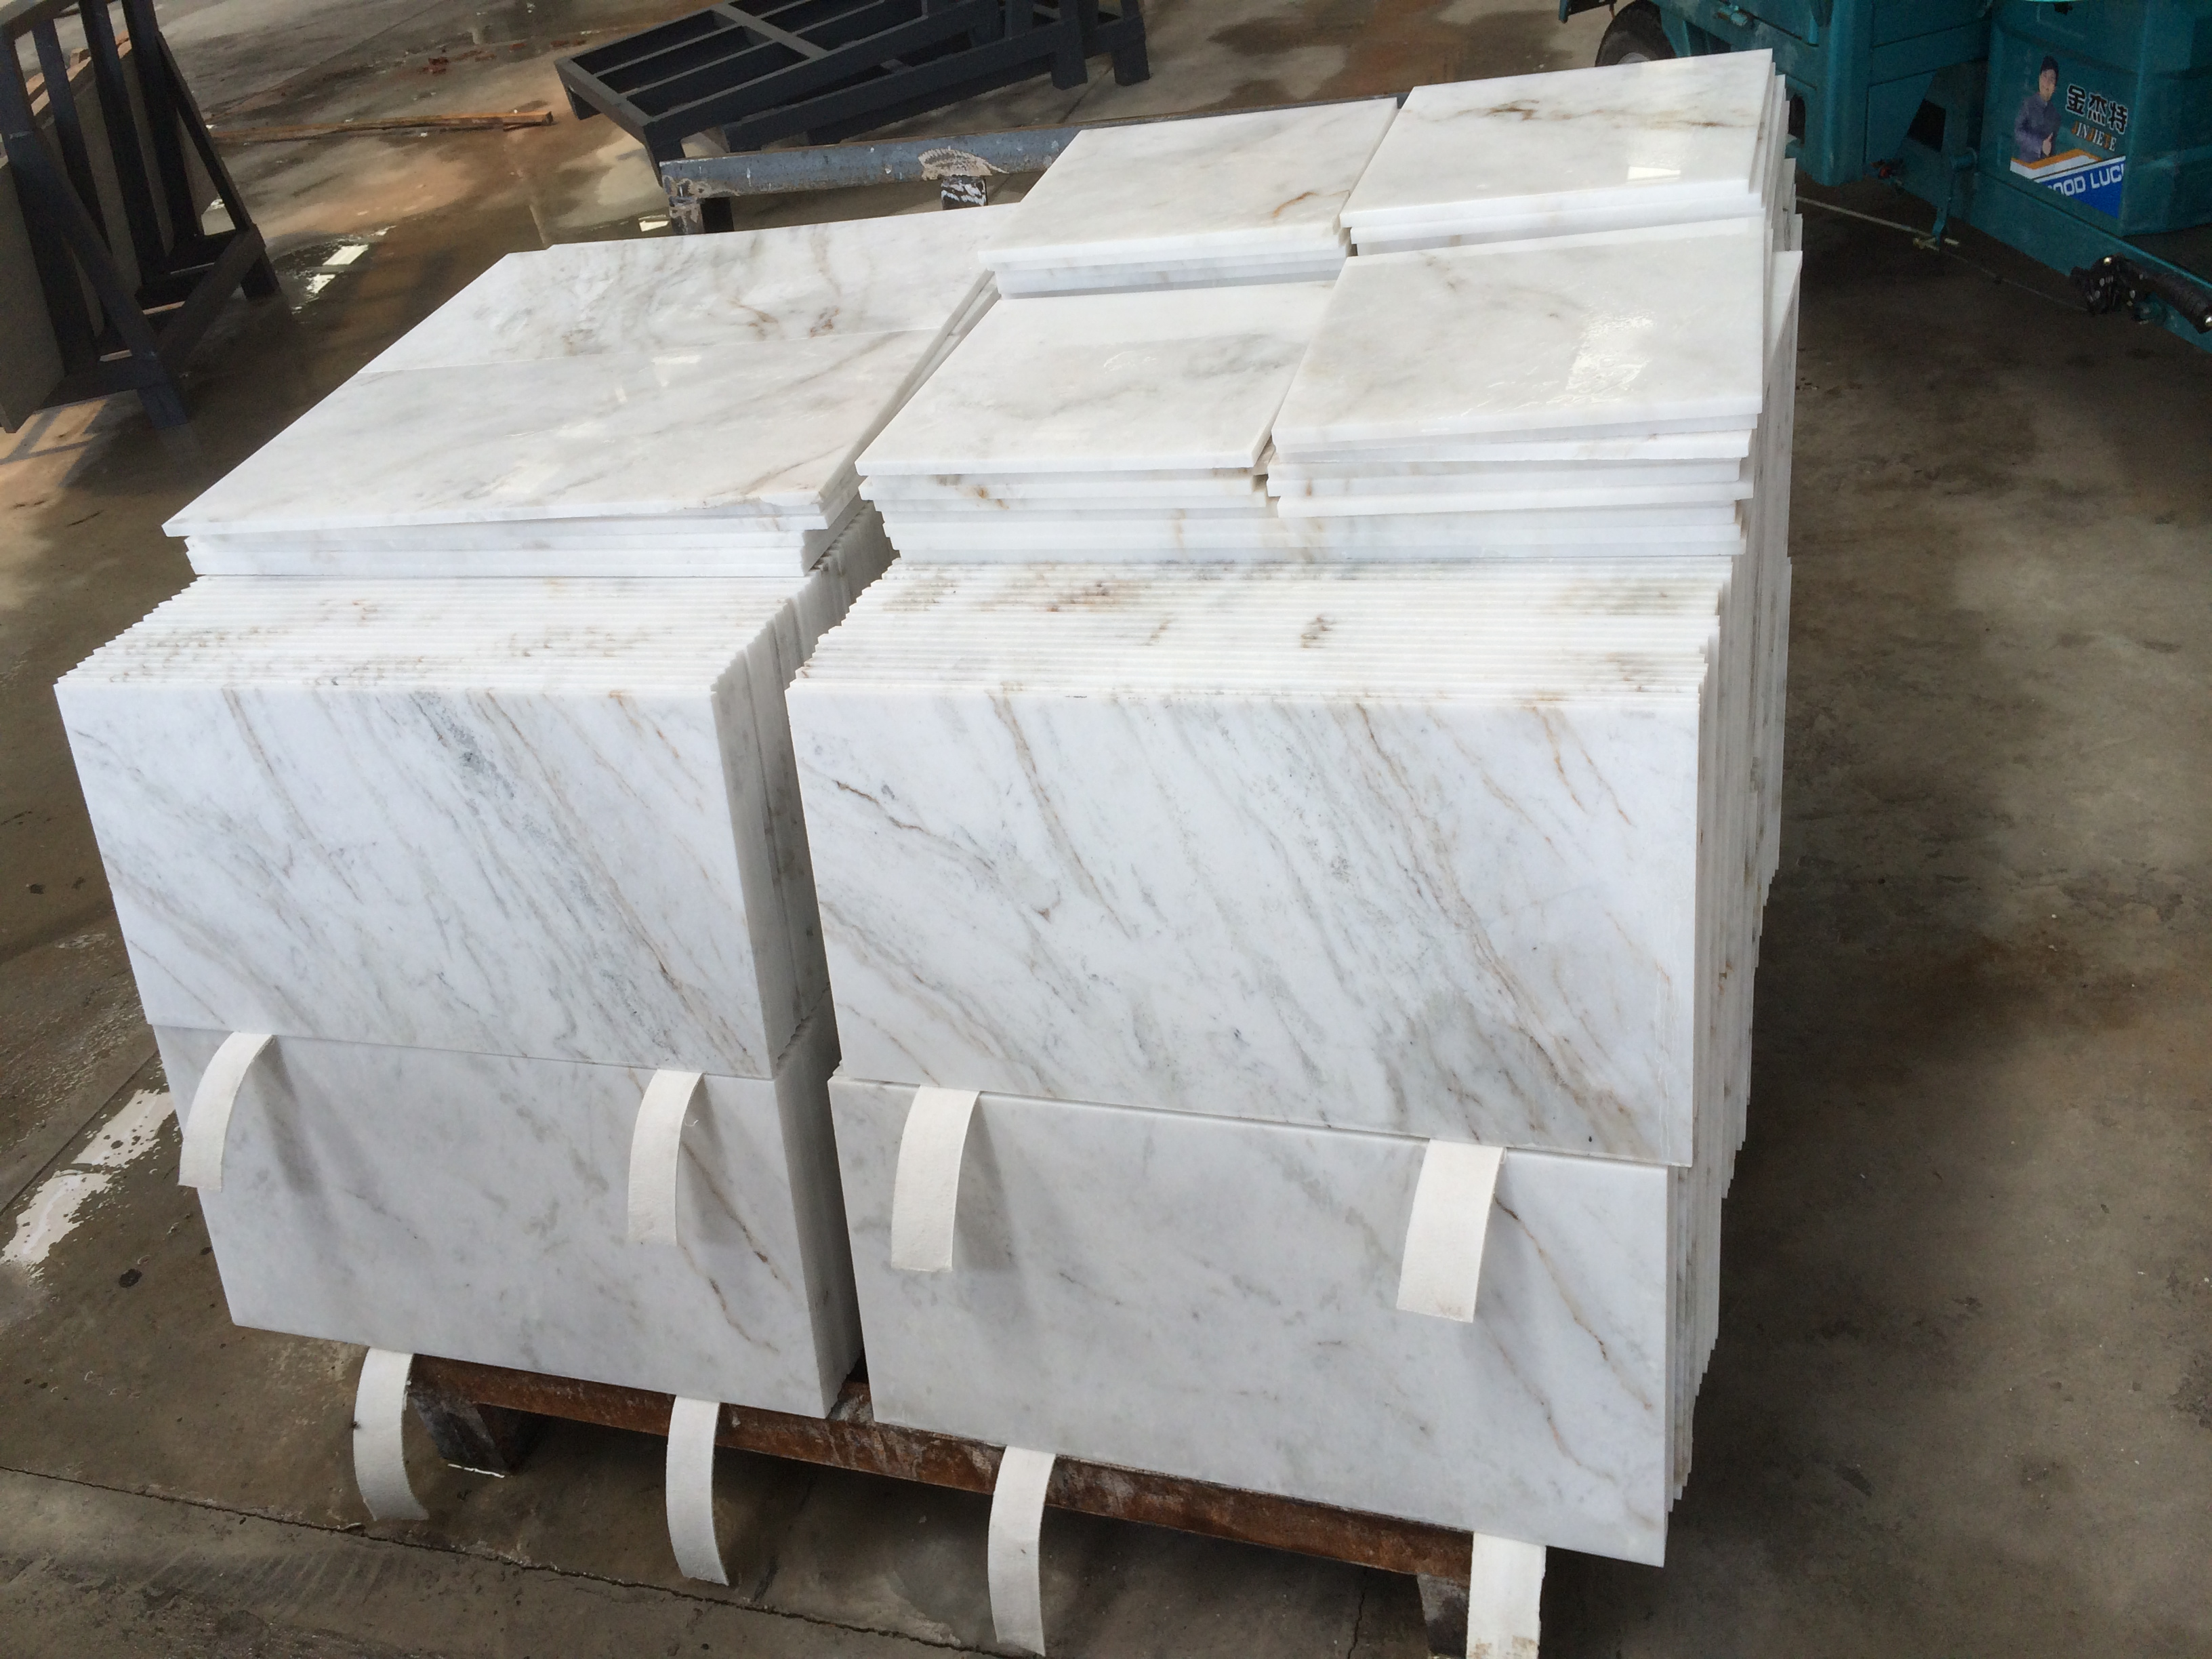 Arabescato Venato-NEW White Marble Tiles from YEYANG Quarry